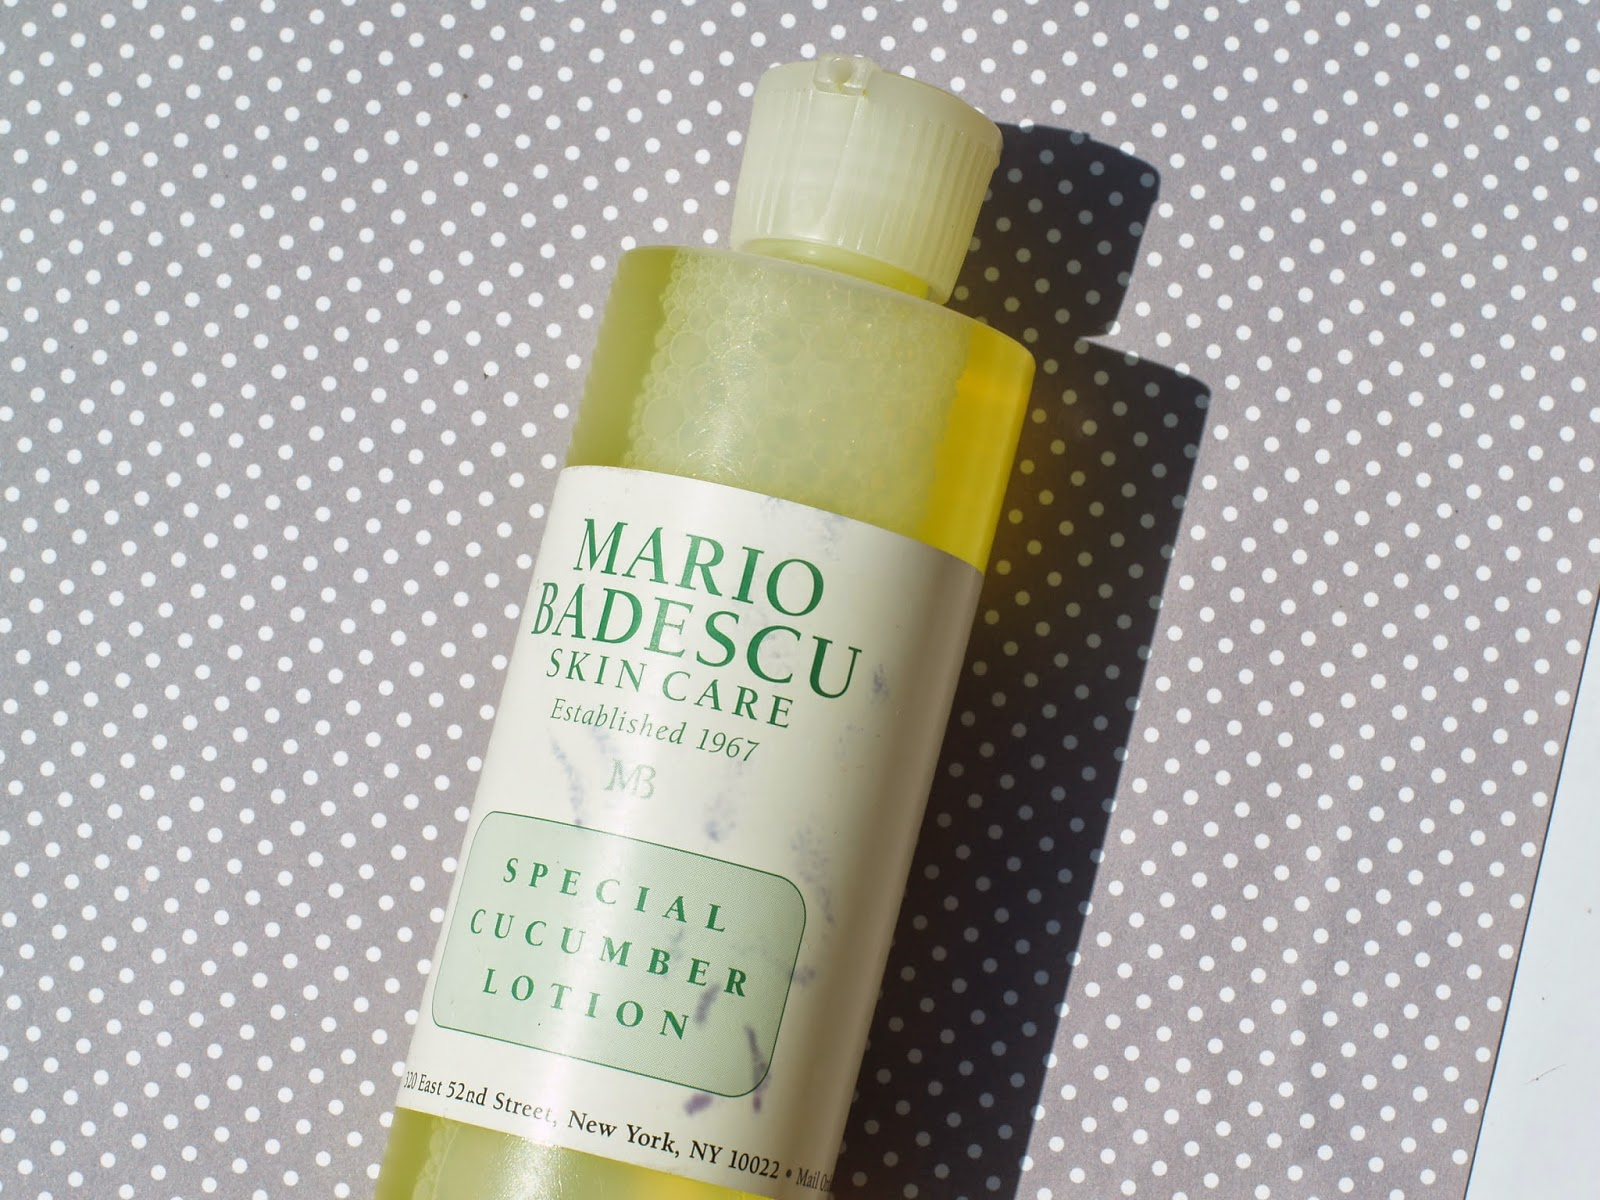 Mario Badescu Cucumber Cleansing Lotion Review